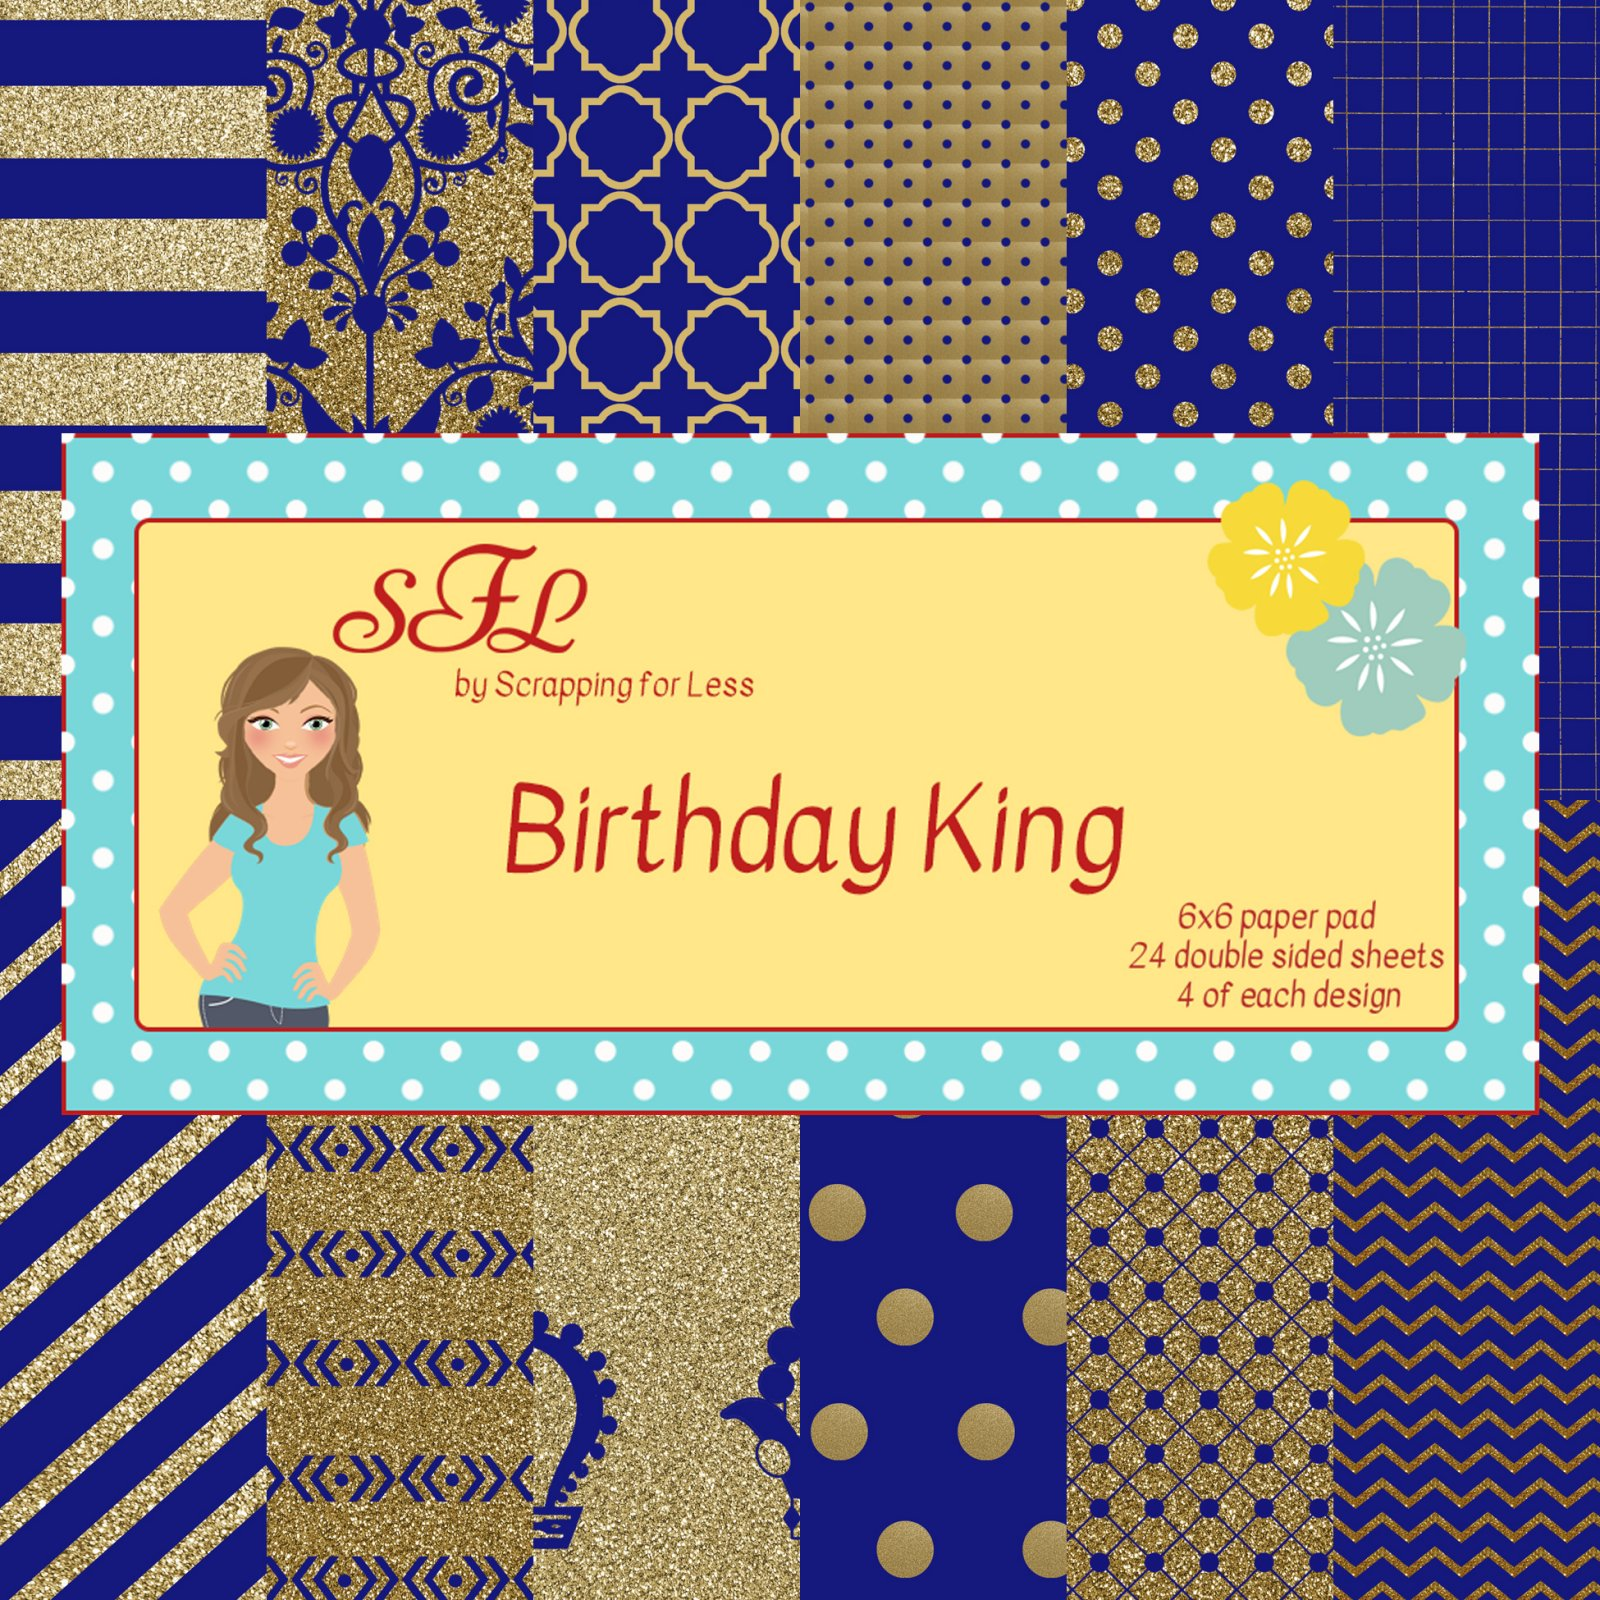 Scrapping for Less Birthday King 6x6 Paper Pad